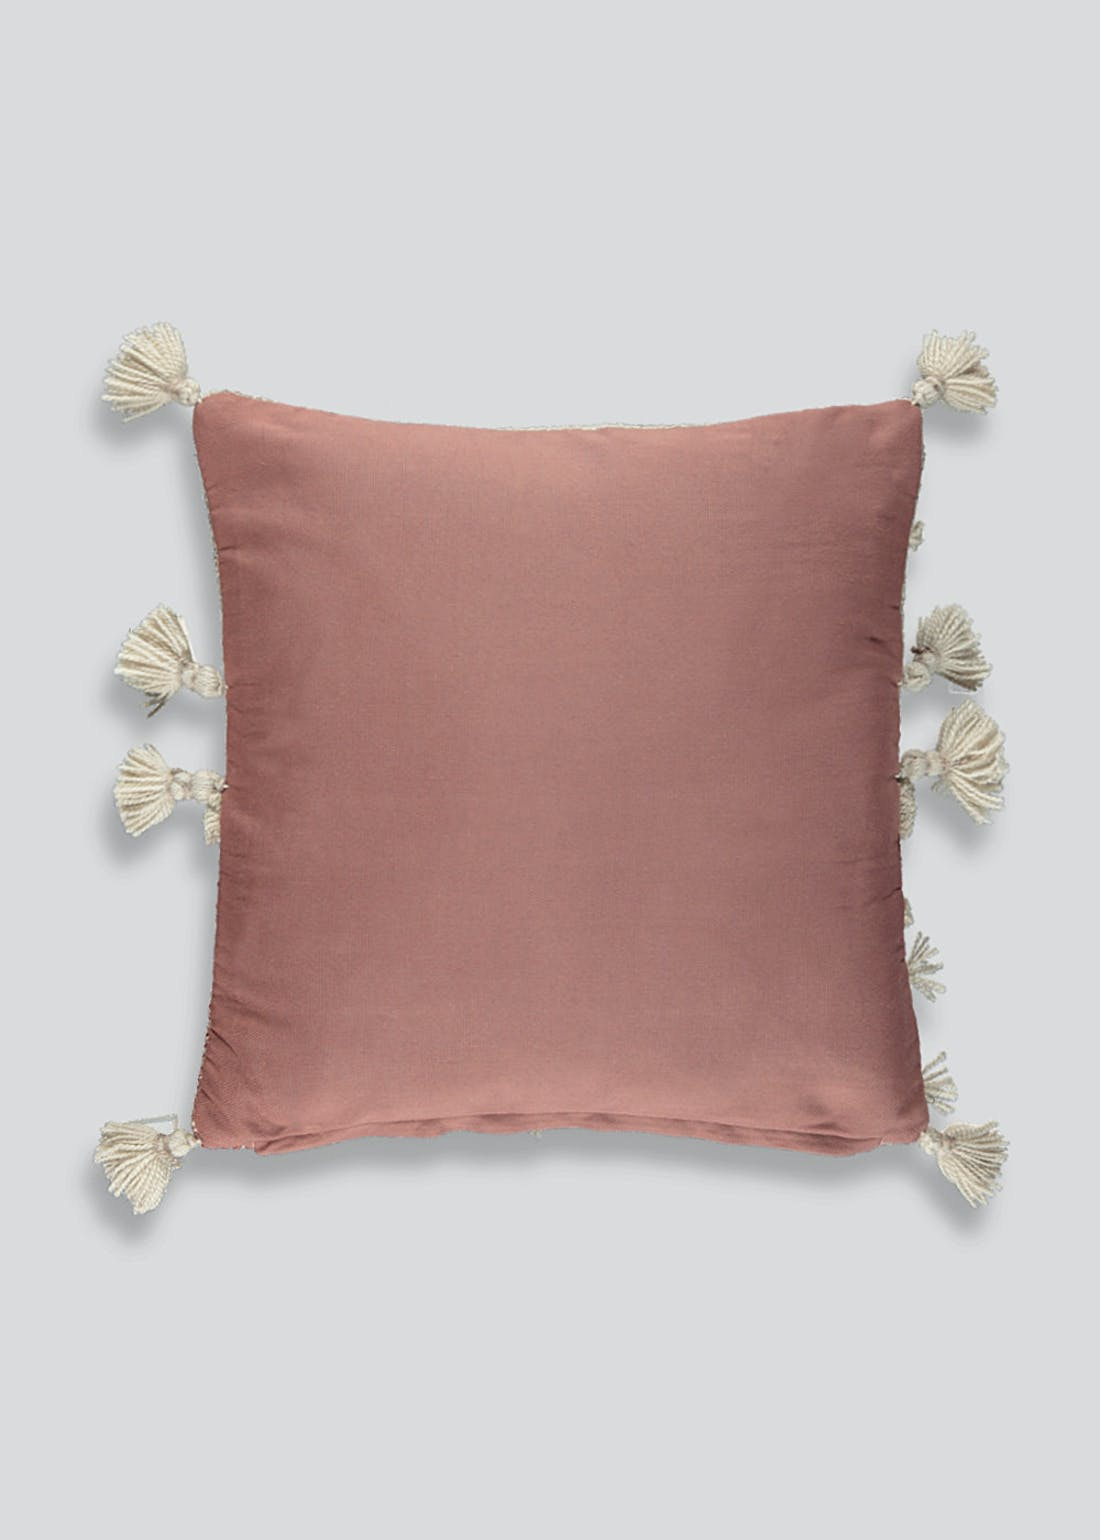 Tufted Outdoor Scatter Cushion (43cm x 43cm)